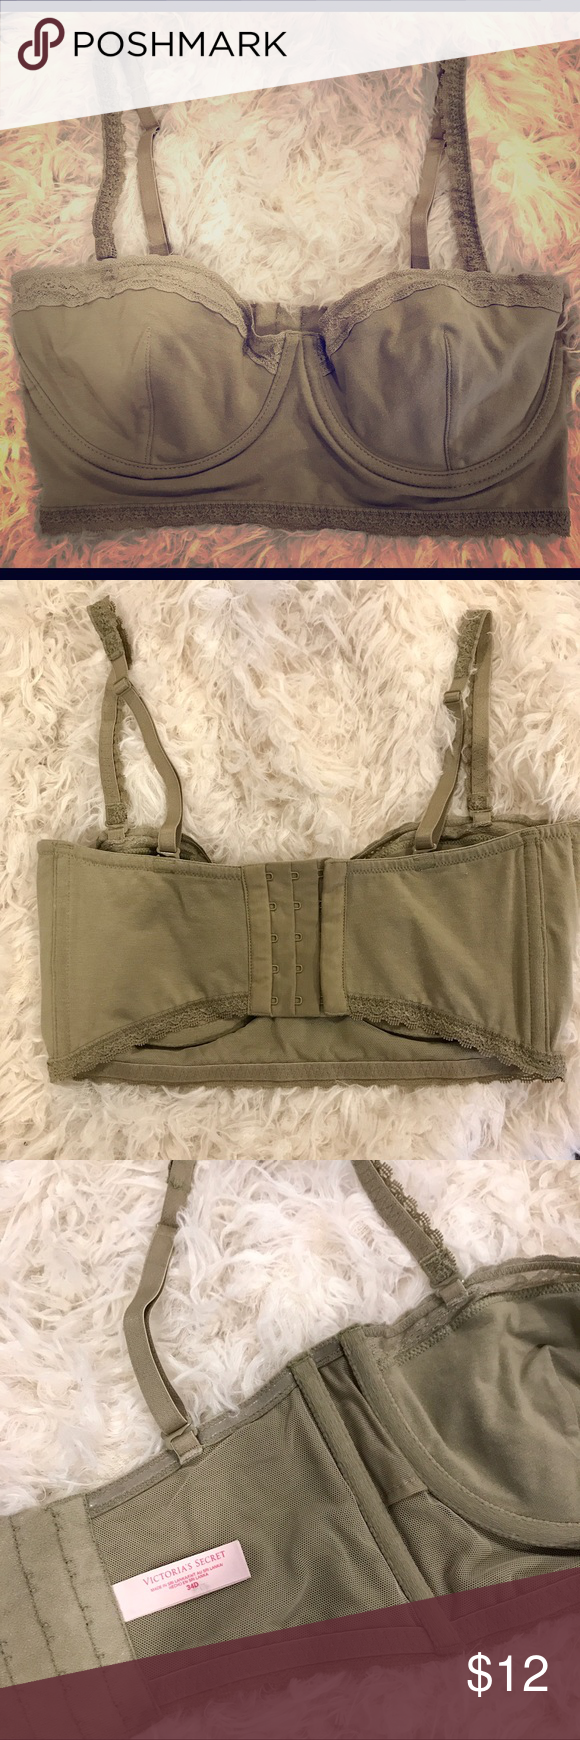 Victoria's Secret Bralette/Bandeau Olive green bralette with underwire, removable straps to make into Bandeau top with lace detail. Never worn- NWOT! Victoria's Secret Intimates & Sleepwear Bandeaus